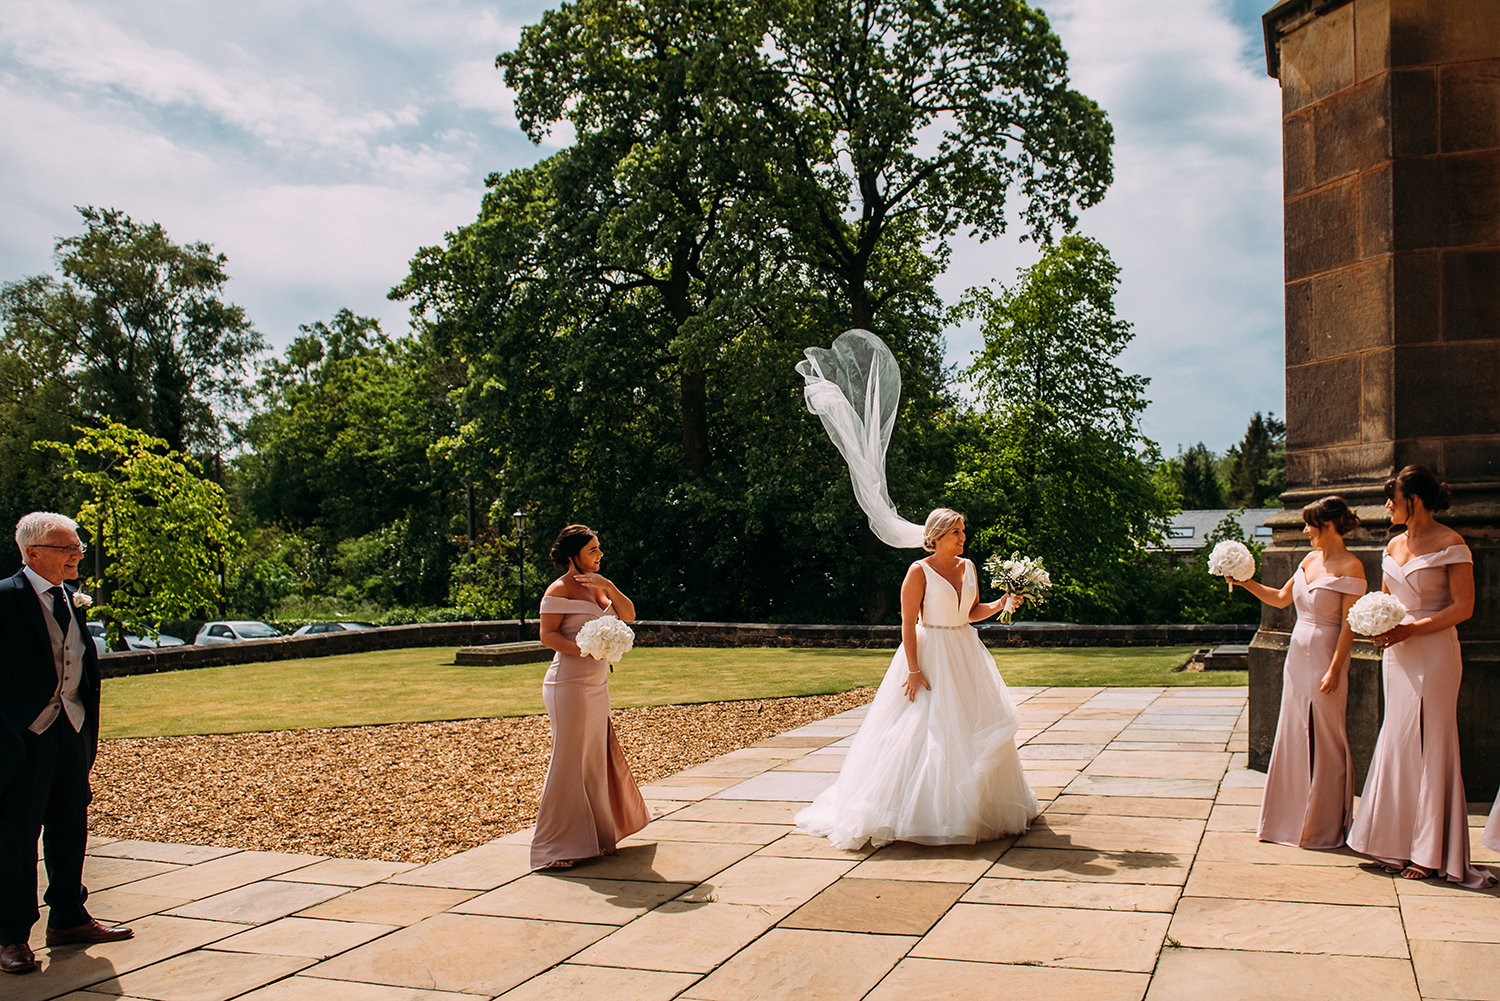 brides veil blowing as she stands with dad and bridesmaids outside church